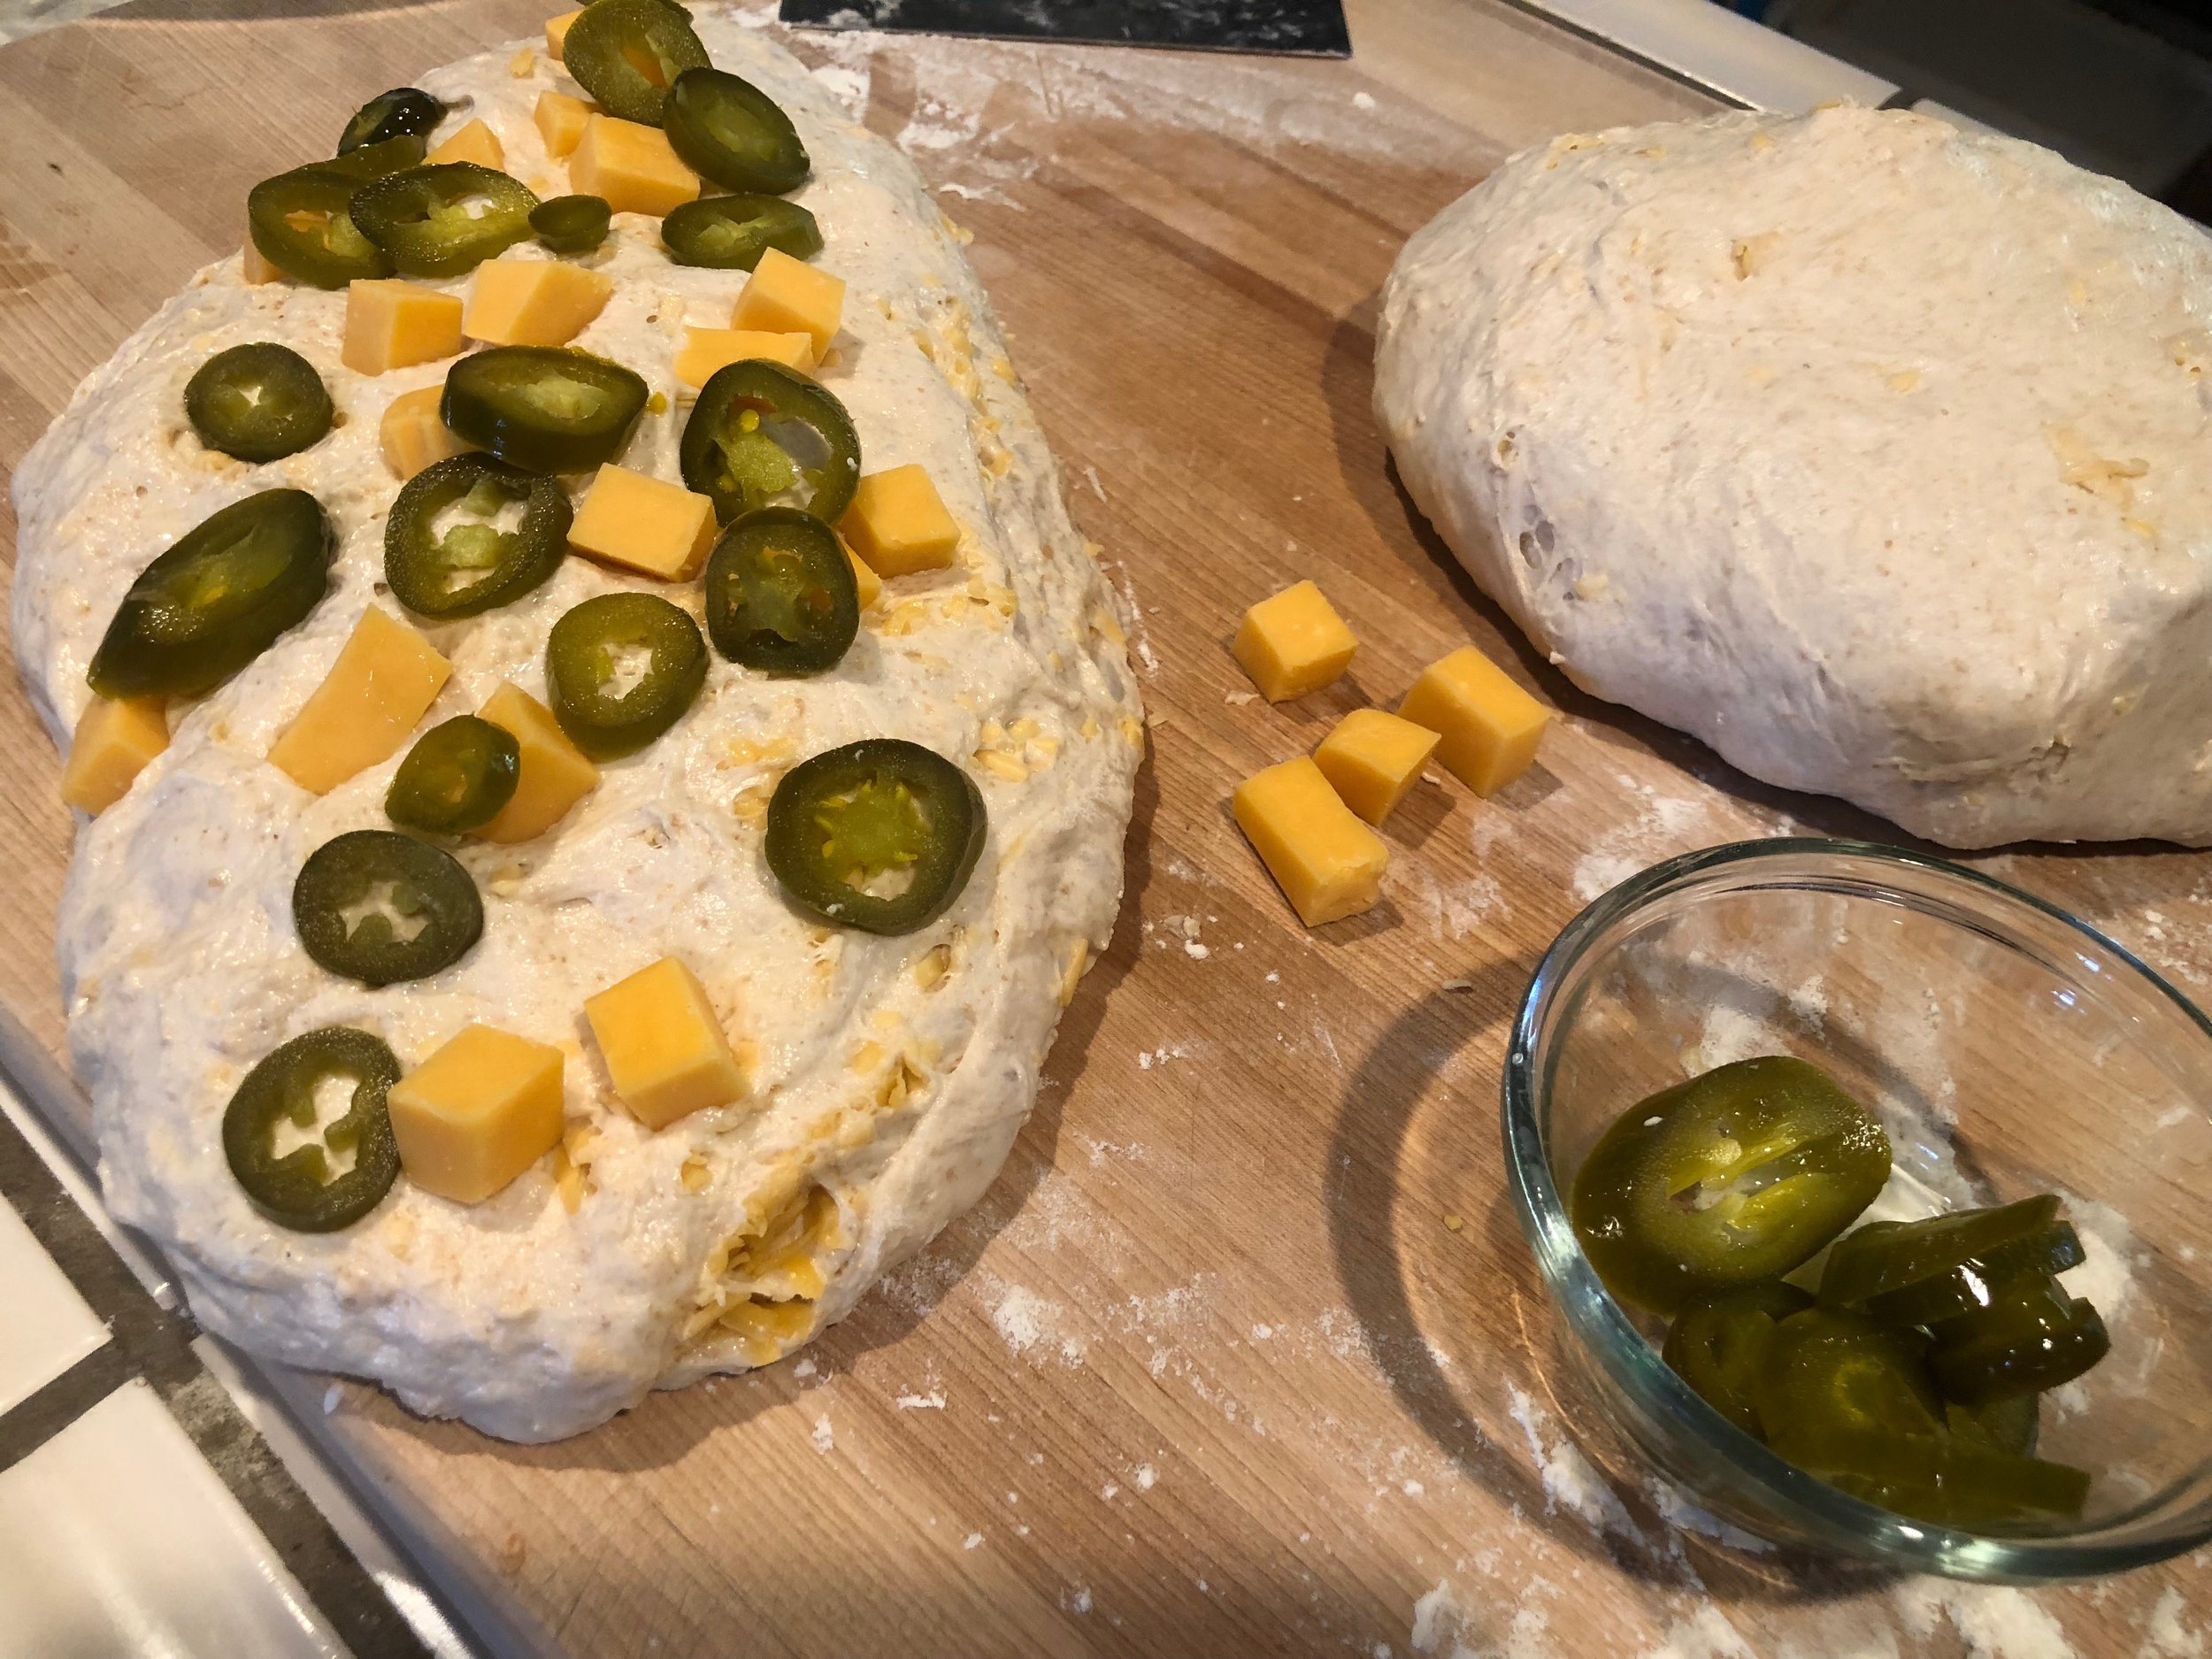 Again layer the cheddar cubes and jalapenos into the dough will shaping for bench rest.